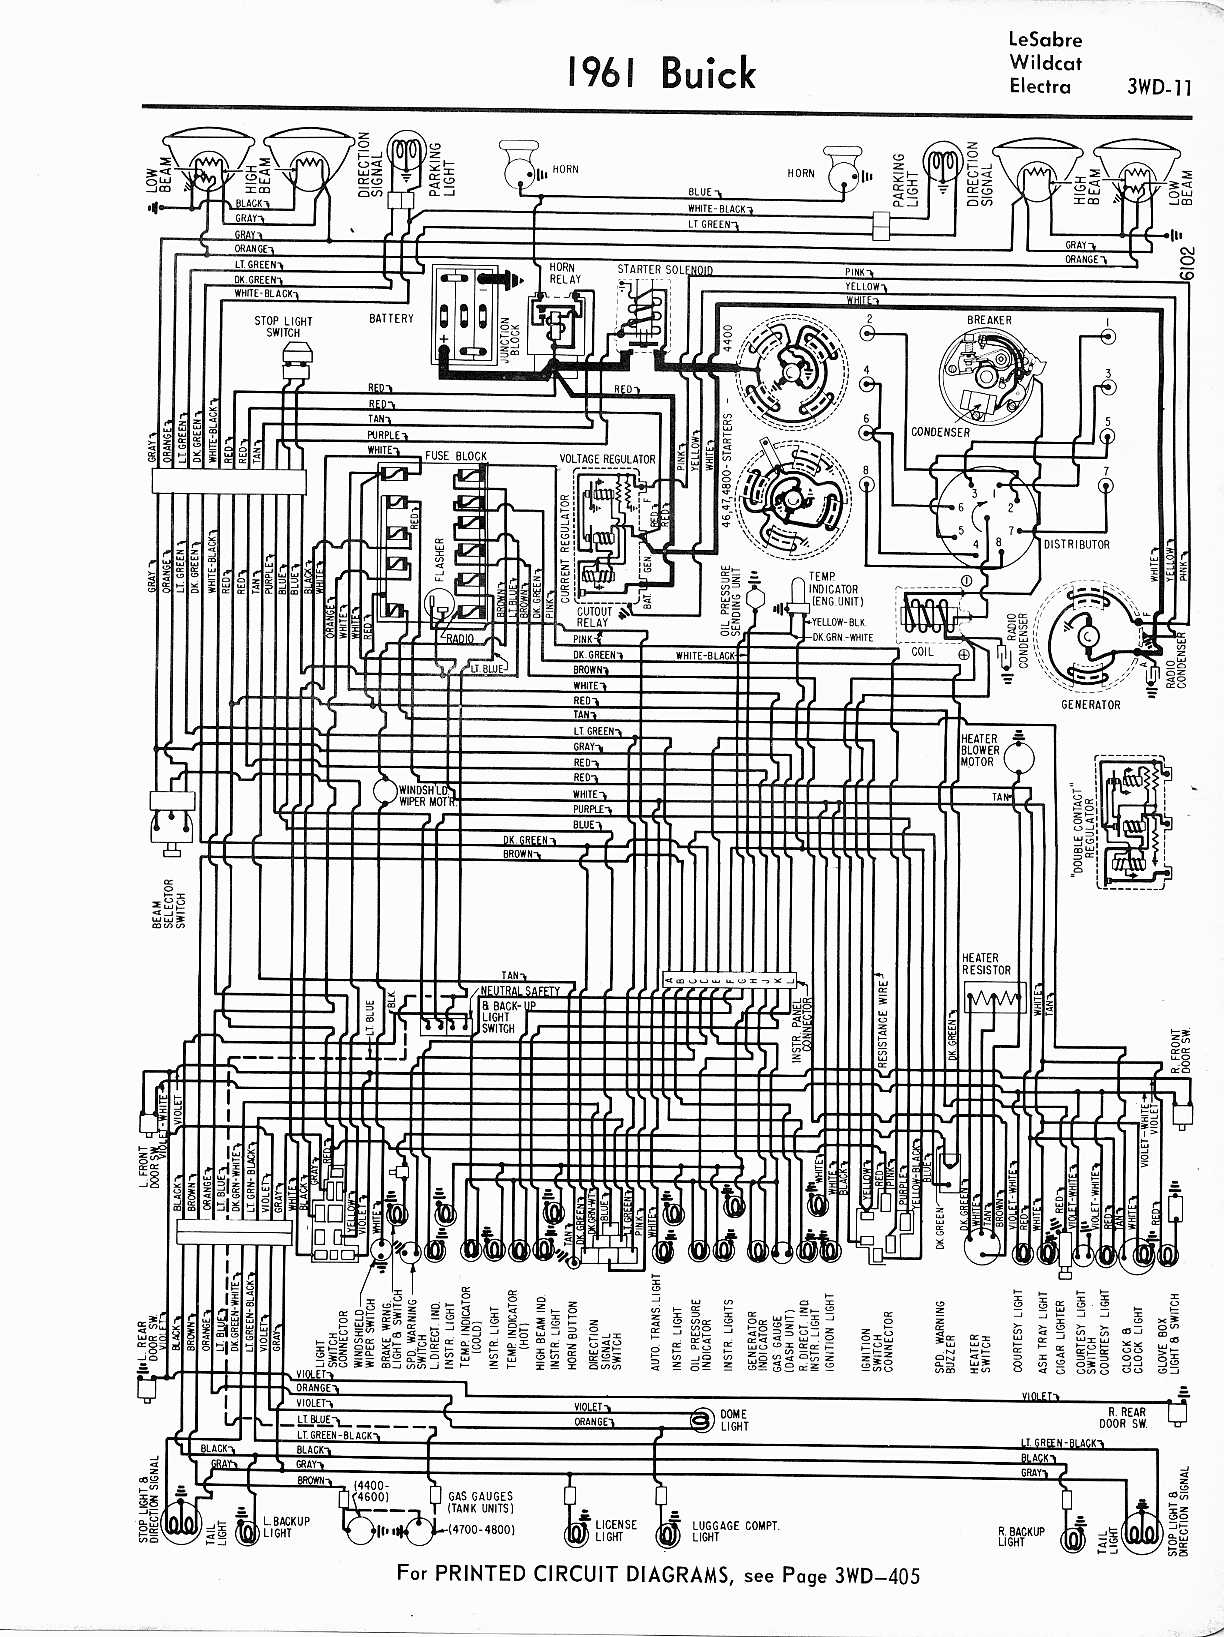 MWireBuic65_3WD 011 buick wiring diagrams 1957 1965 1999 buick century wiring diagram at highcare.asia